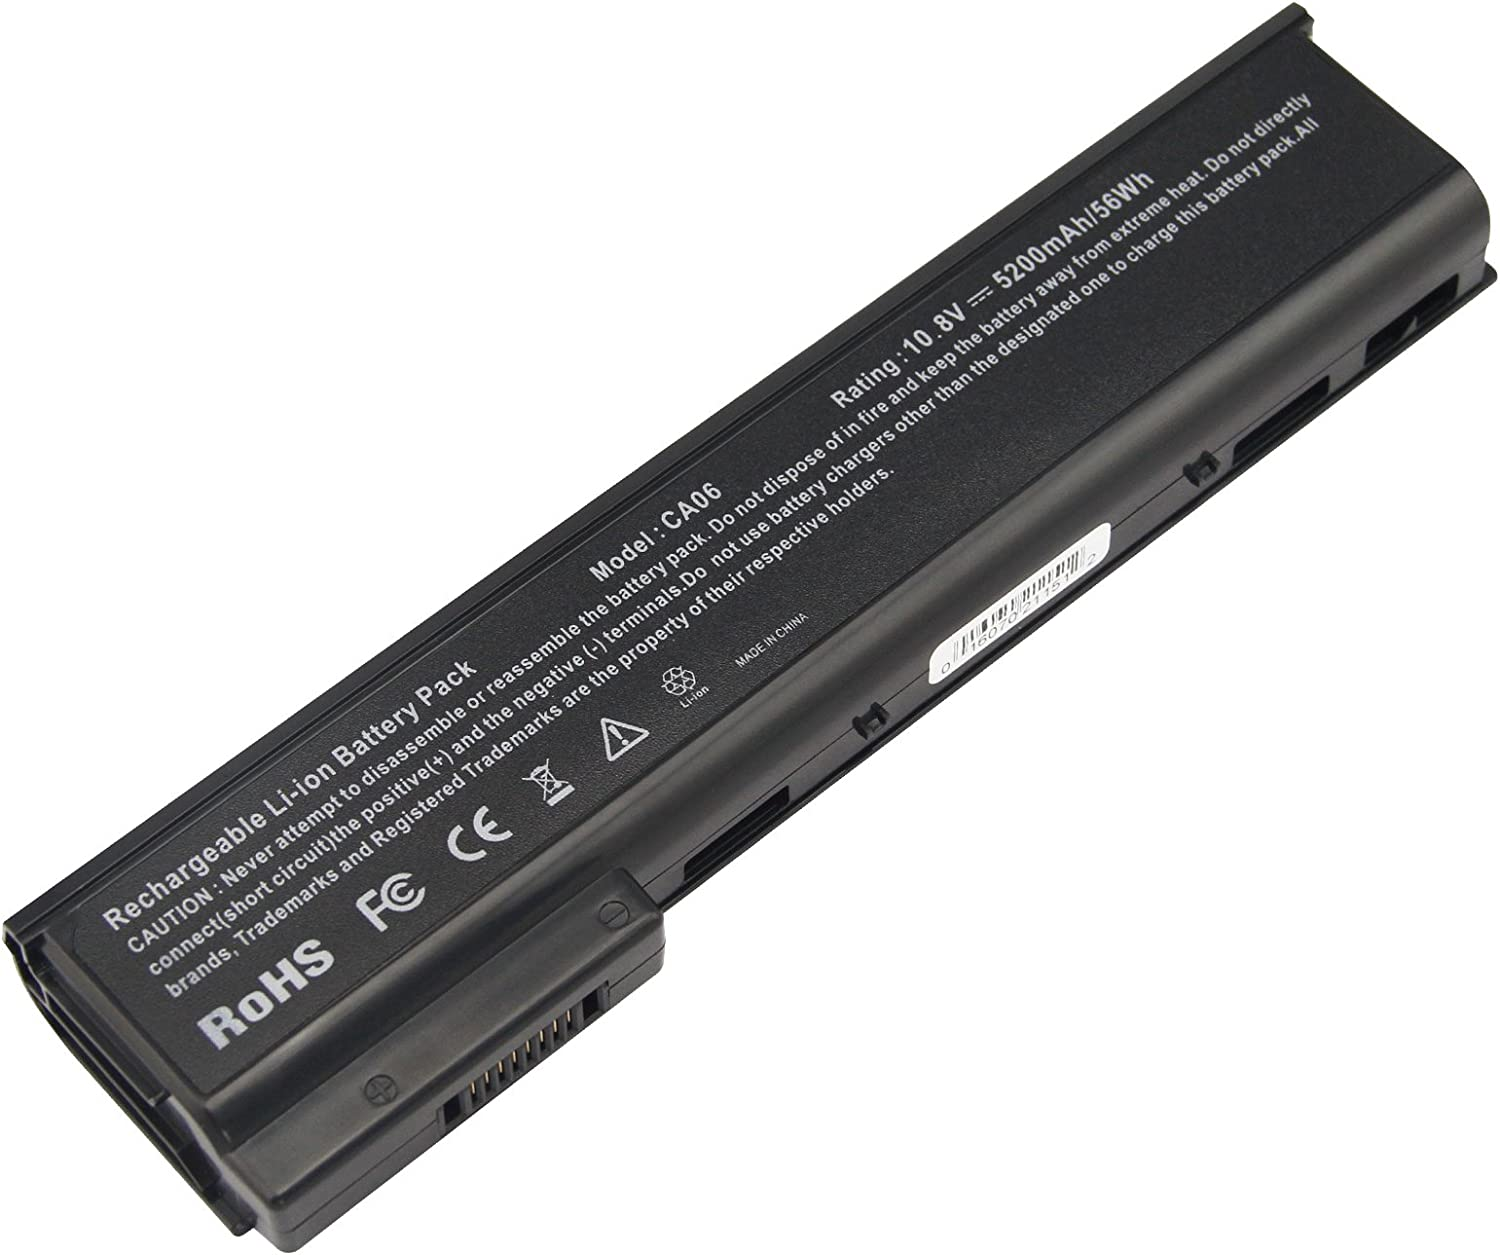 AC Doctor INC Laptop Battery for HP ProBook 640 645 650 655 G0 G1 PN: CA06 CA06XL HSTNN-DB4Y HSTNN-LB4Z HSTNN-LB4X HSTNN-LB4Y HSTNN-LP4Z, 5200mAh/10.8V/6-Cells